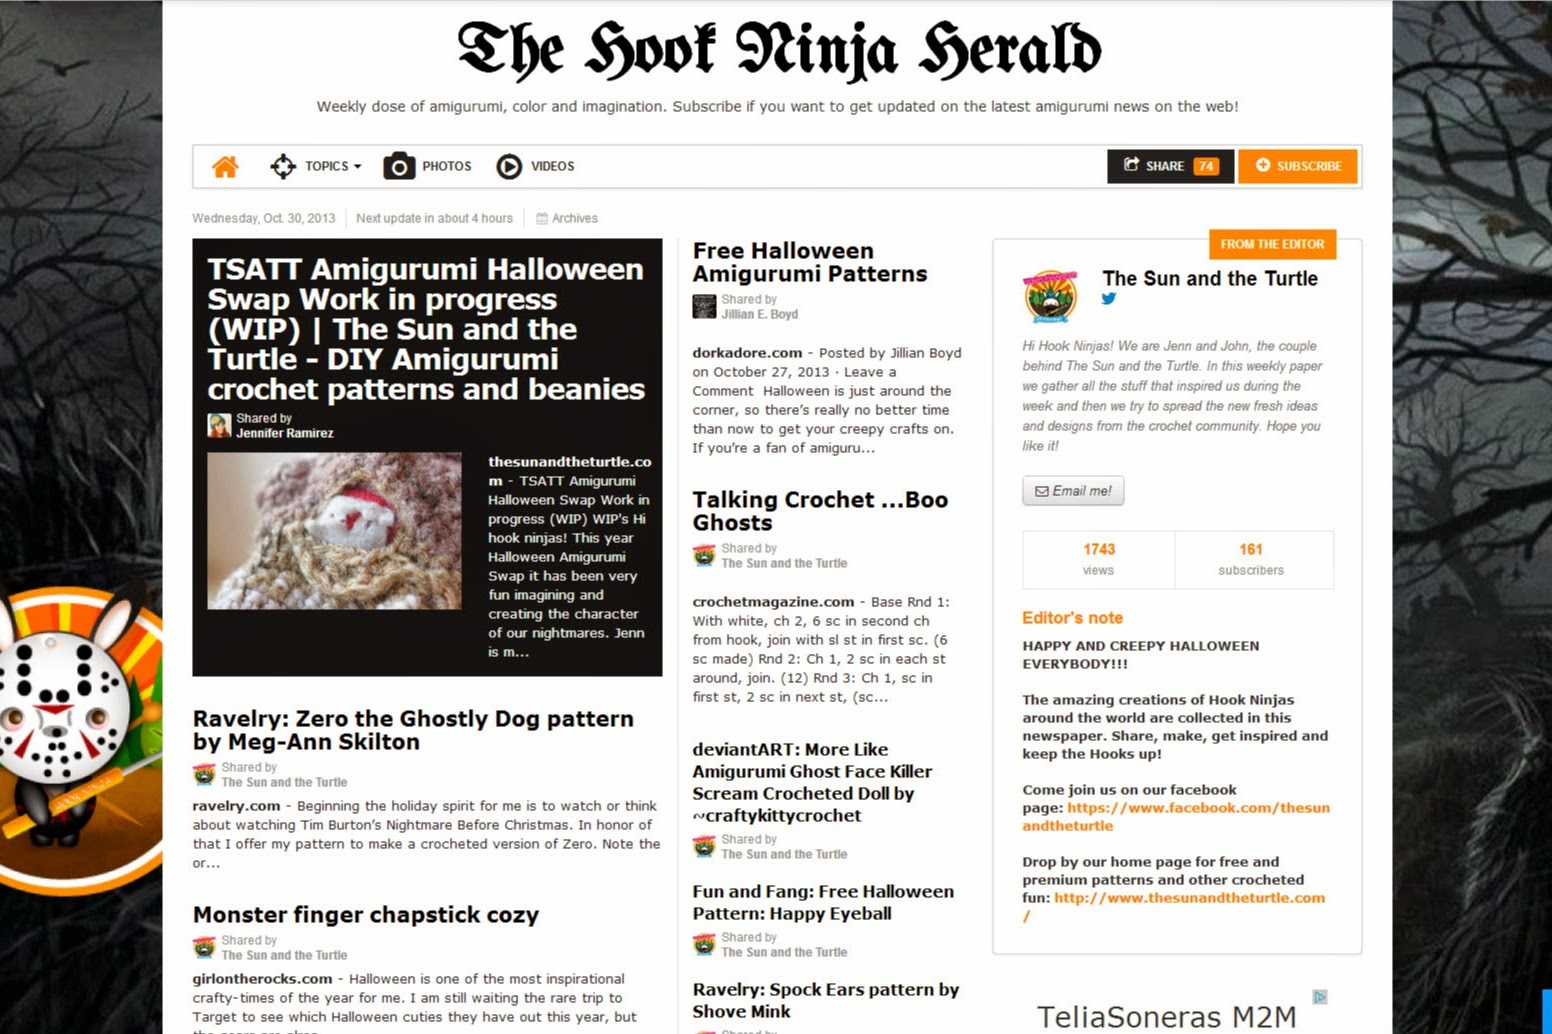 the hook ninja herald amigurumi pattern online newspaper the hook ninja herald is a weekly online newspaper about amigurumis and crochet curated by the